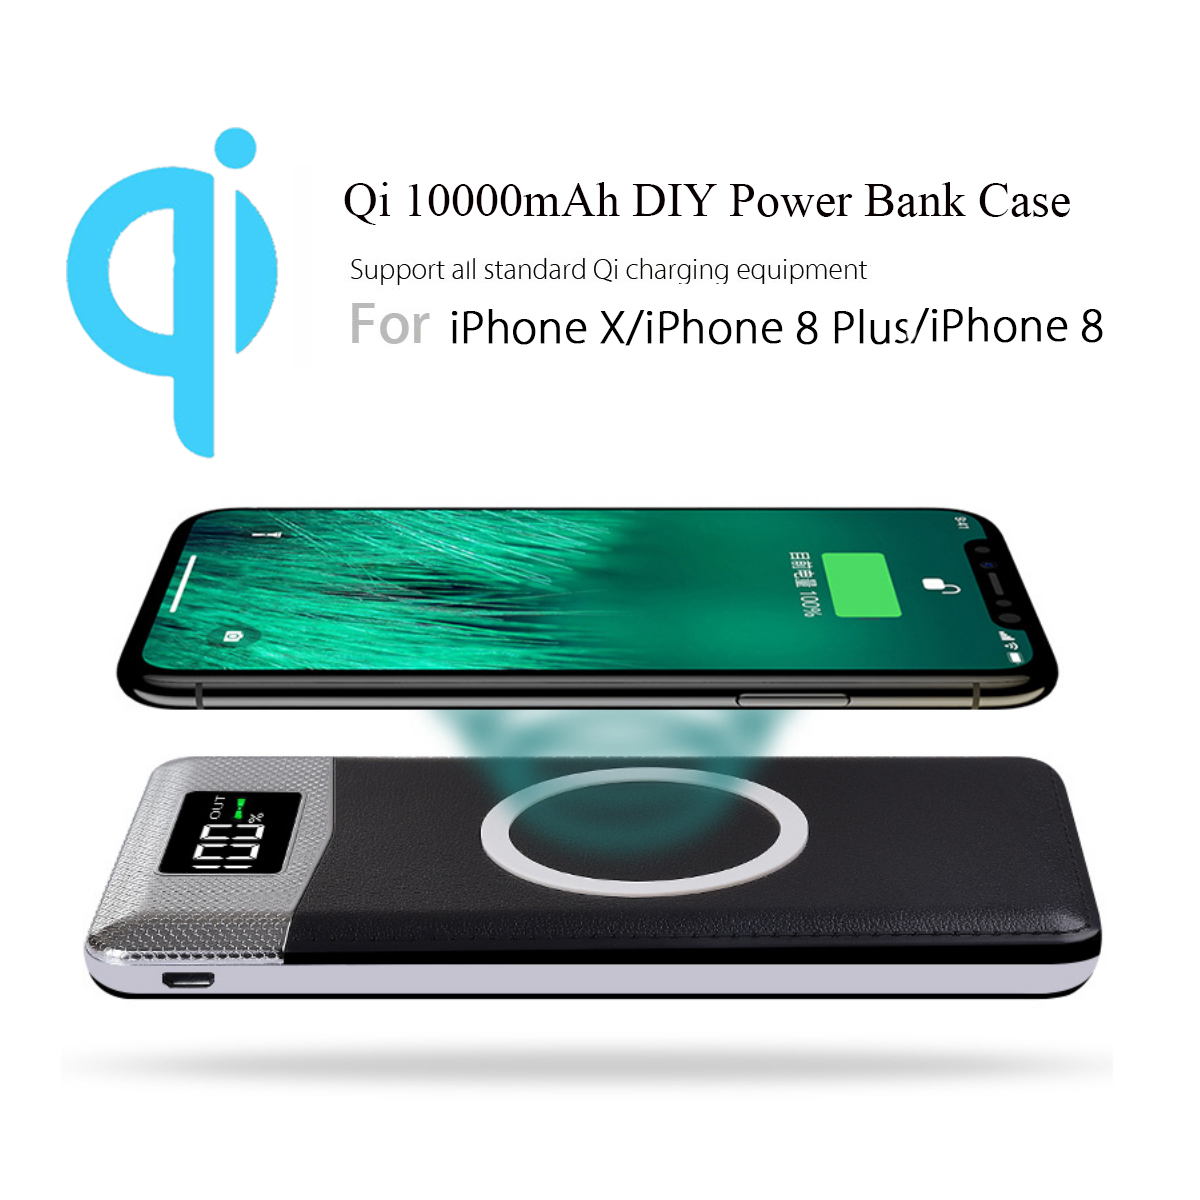 1000mAh QI Wireless Charging Charger Power Bank DIY Plastic Case Case With Flashlight